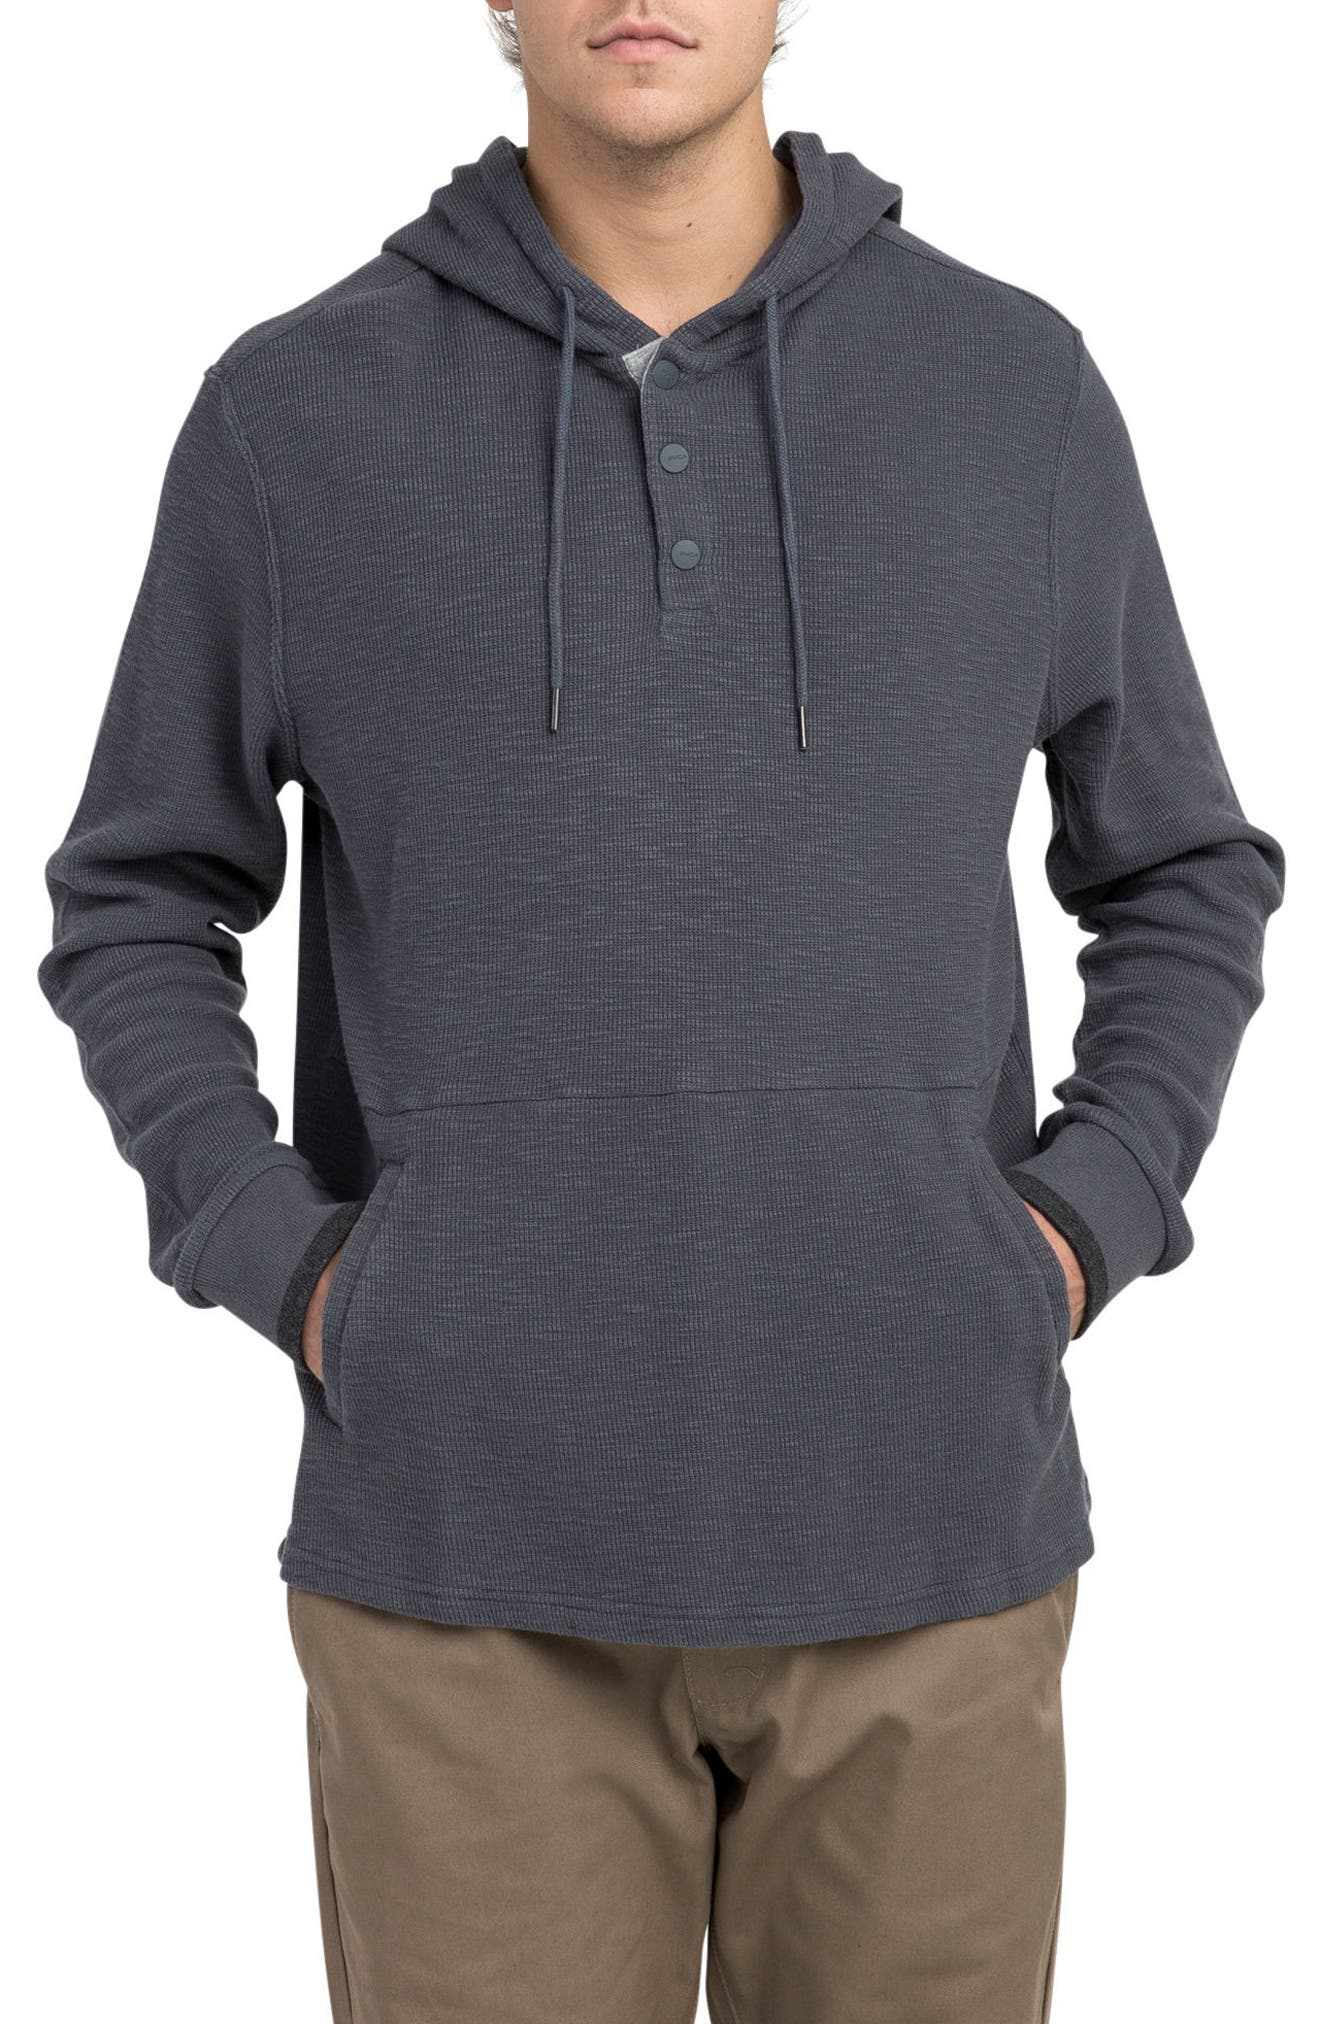 Copa Hooded Henley Pullover,                             Main thumbnail 1, color,                             020